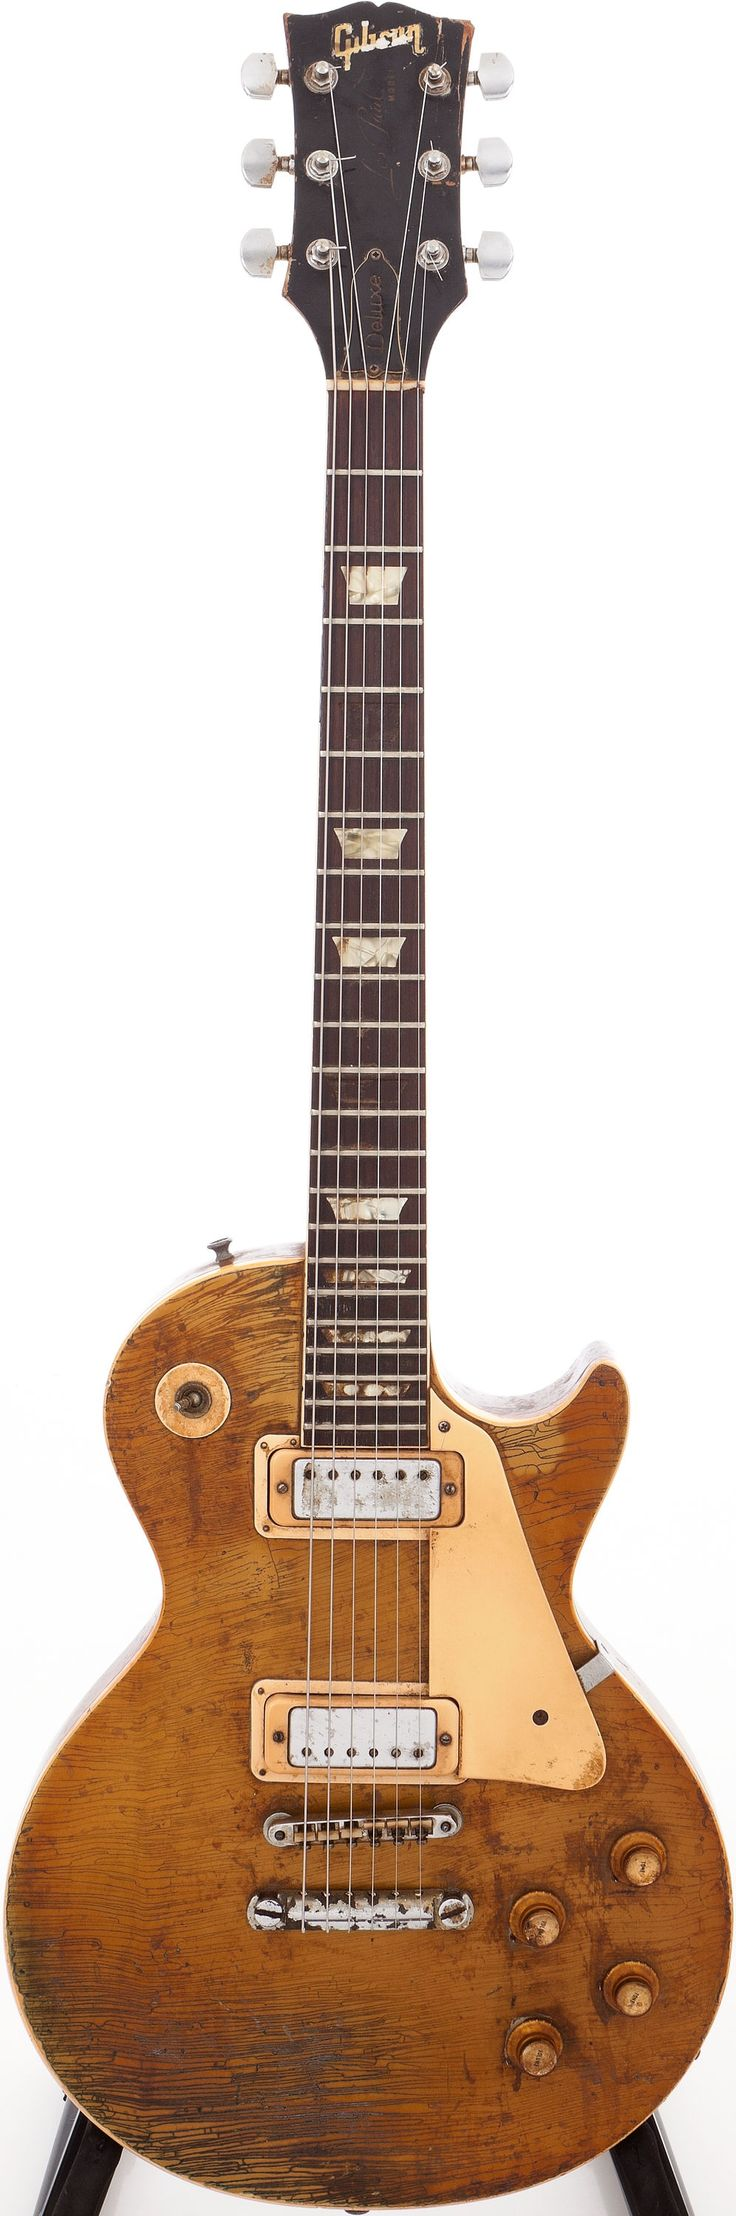 '69 Les Paul Goldtop – I am usually no fan of Goldtops, but this worn down one, wow!